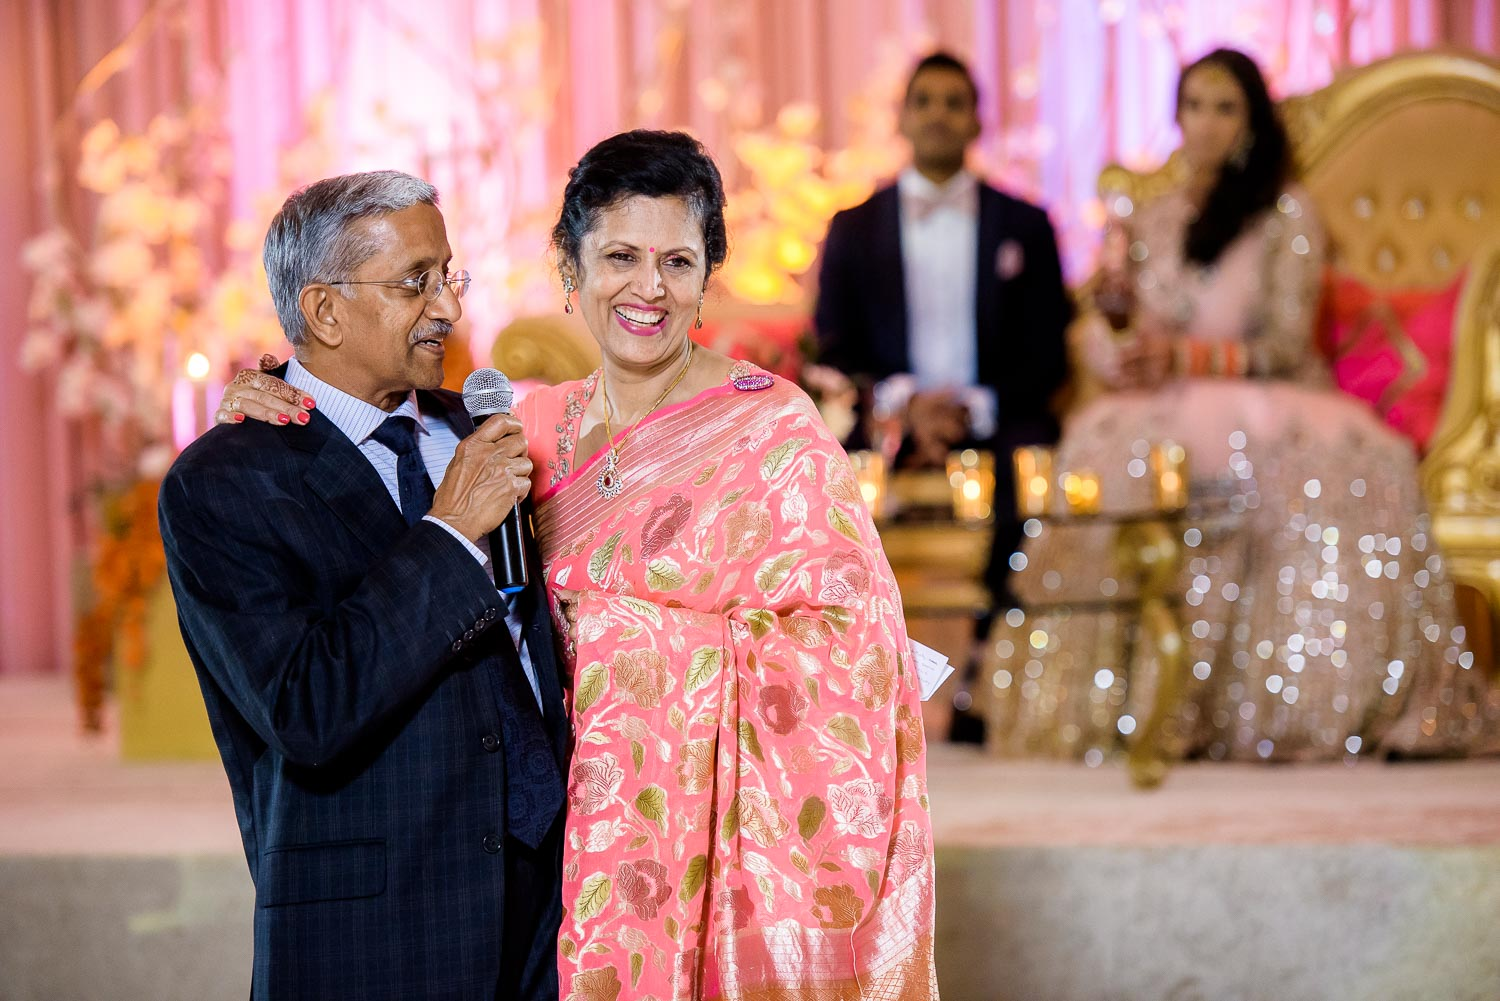 Parents of the groom toast during a Renaissance Schaumburg Convention Center Indian wedding reception.